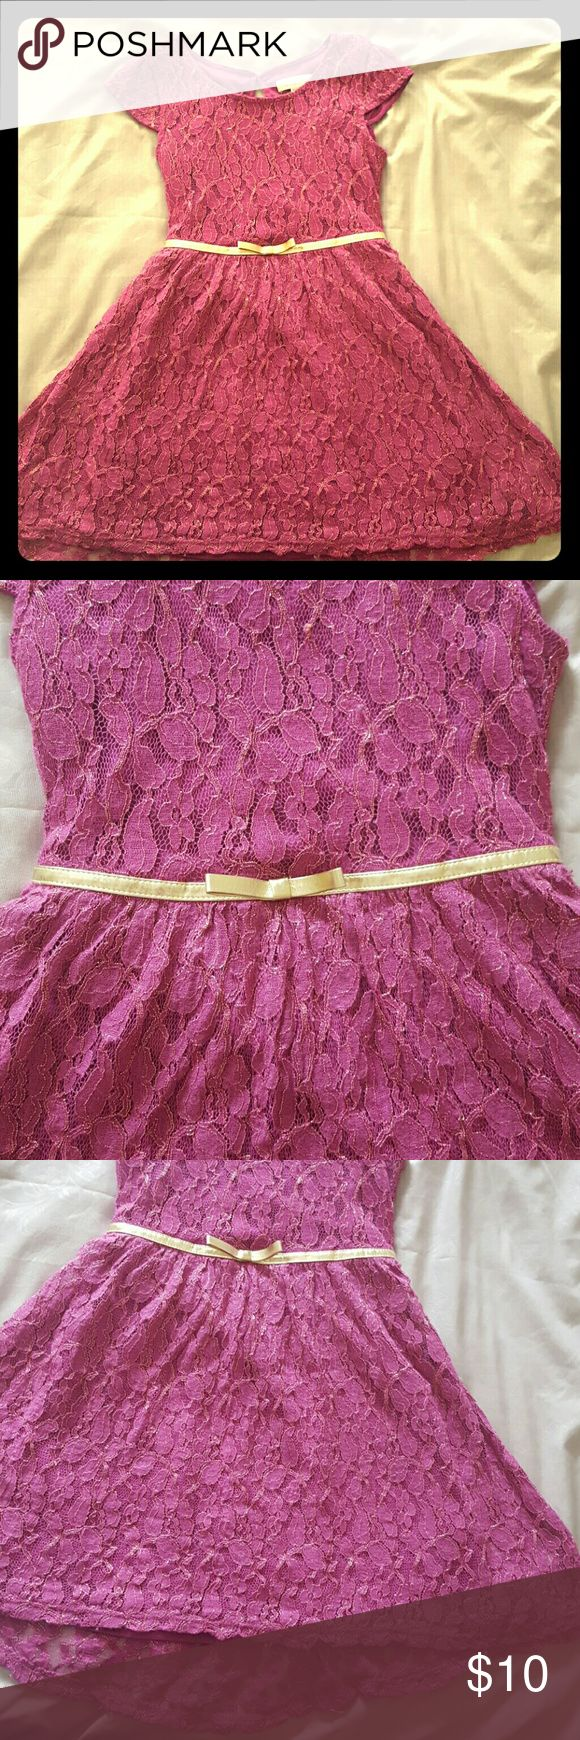 Girls Lacy Purple and Gold Dress Very cute girls Xhileration dress from Target. There's a built in slip underneath. It's a purple pink color.. not quite fushia but not quite purple.  The gold belt is part of the dress detail, totally sewn in. The lace has gold detail throughout. This was worn to a Father daughter dance at school. It's a size Medium 7/8. Xhilaration Dresses Formal